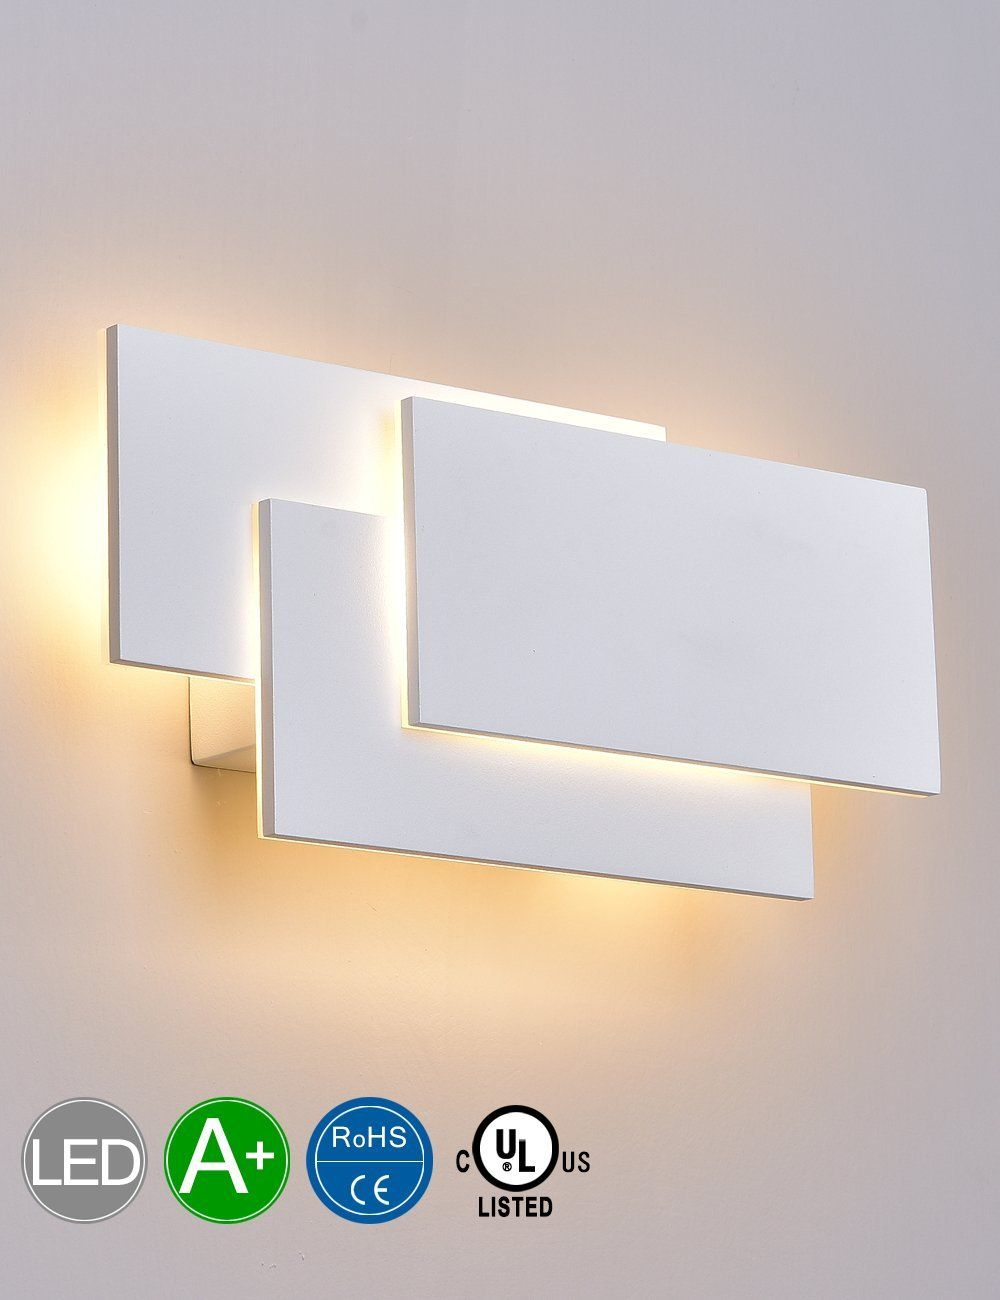 SOLFART LED Up Down Wall Lights Indoor Wall Sconce Lamps Bedroom